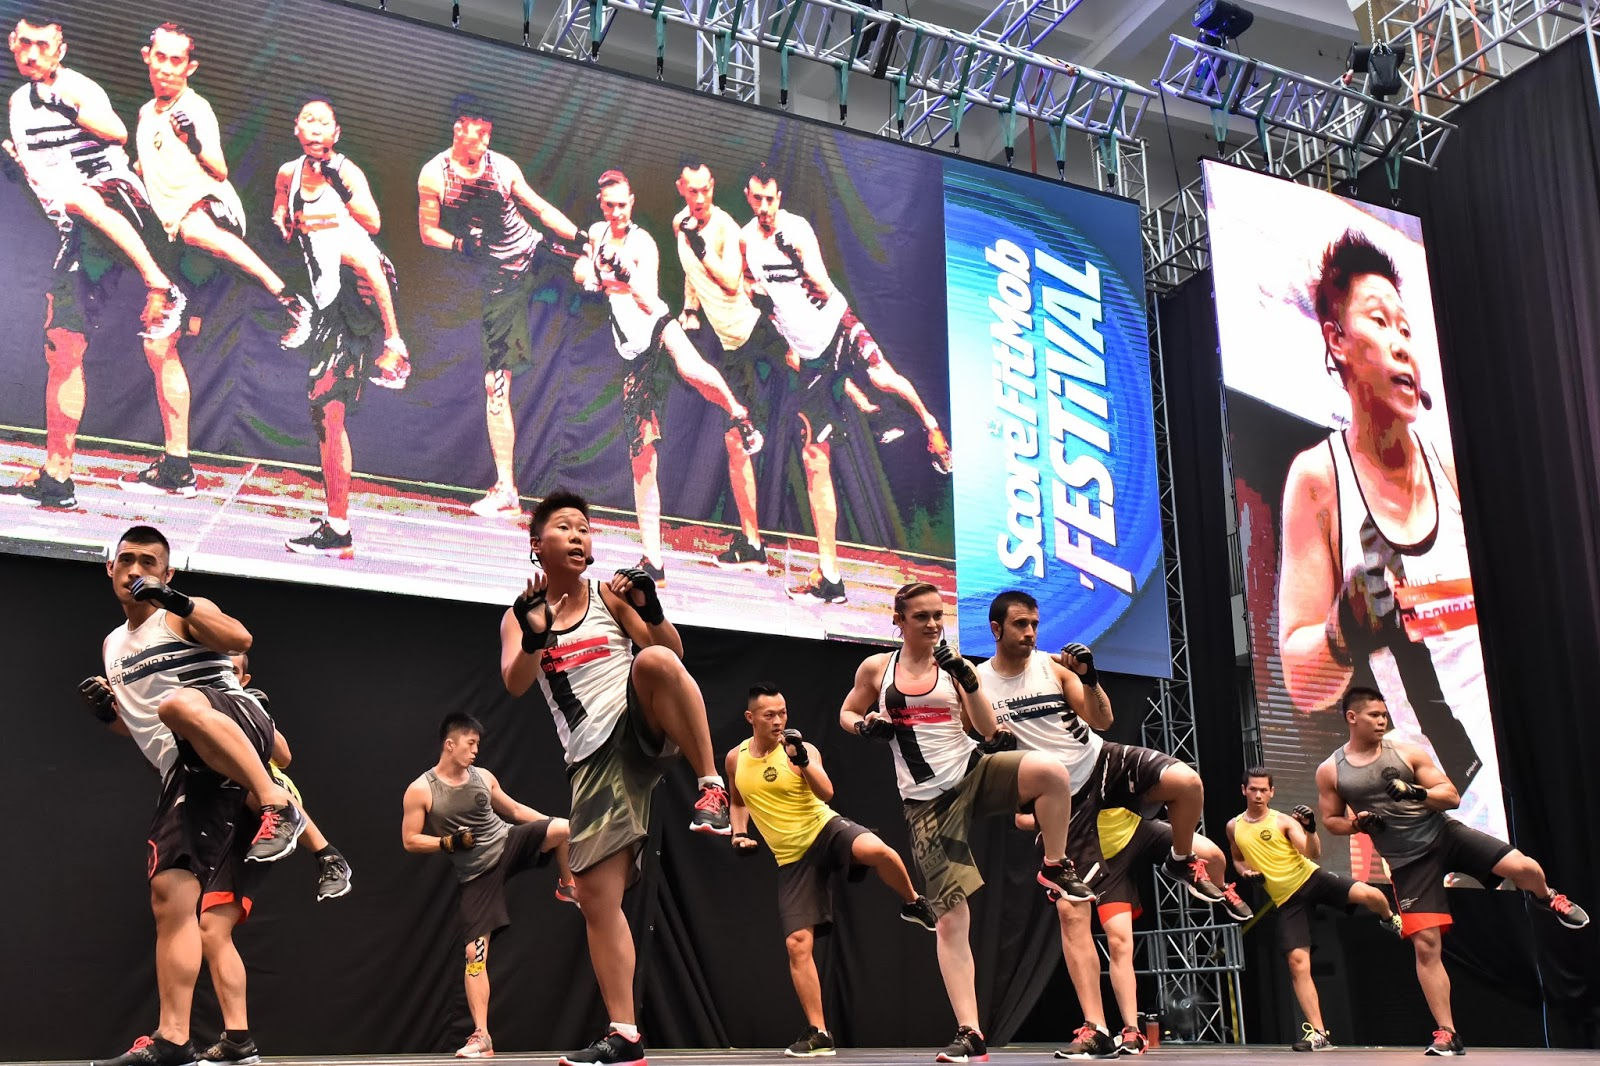 The Two Part SCORE FitMob Festival 2015 Featuring Largest Les Mills BODYCOMBATR Class And Partywas Held In Conjunction With